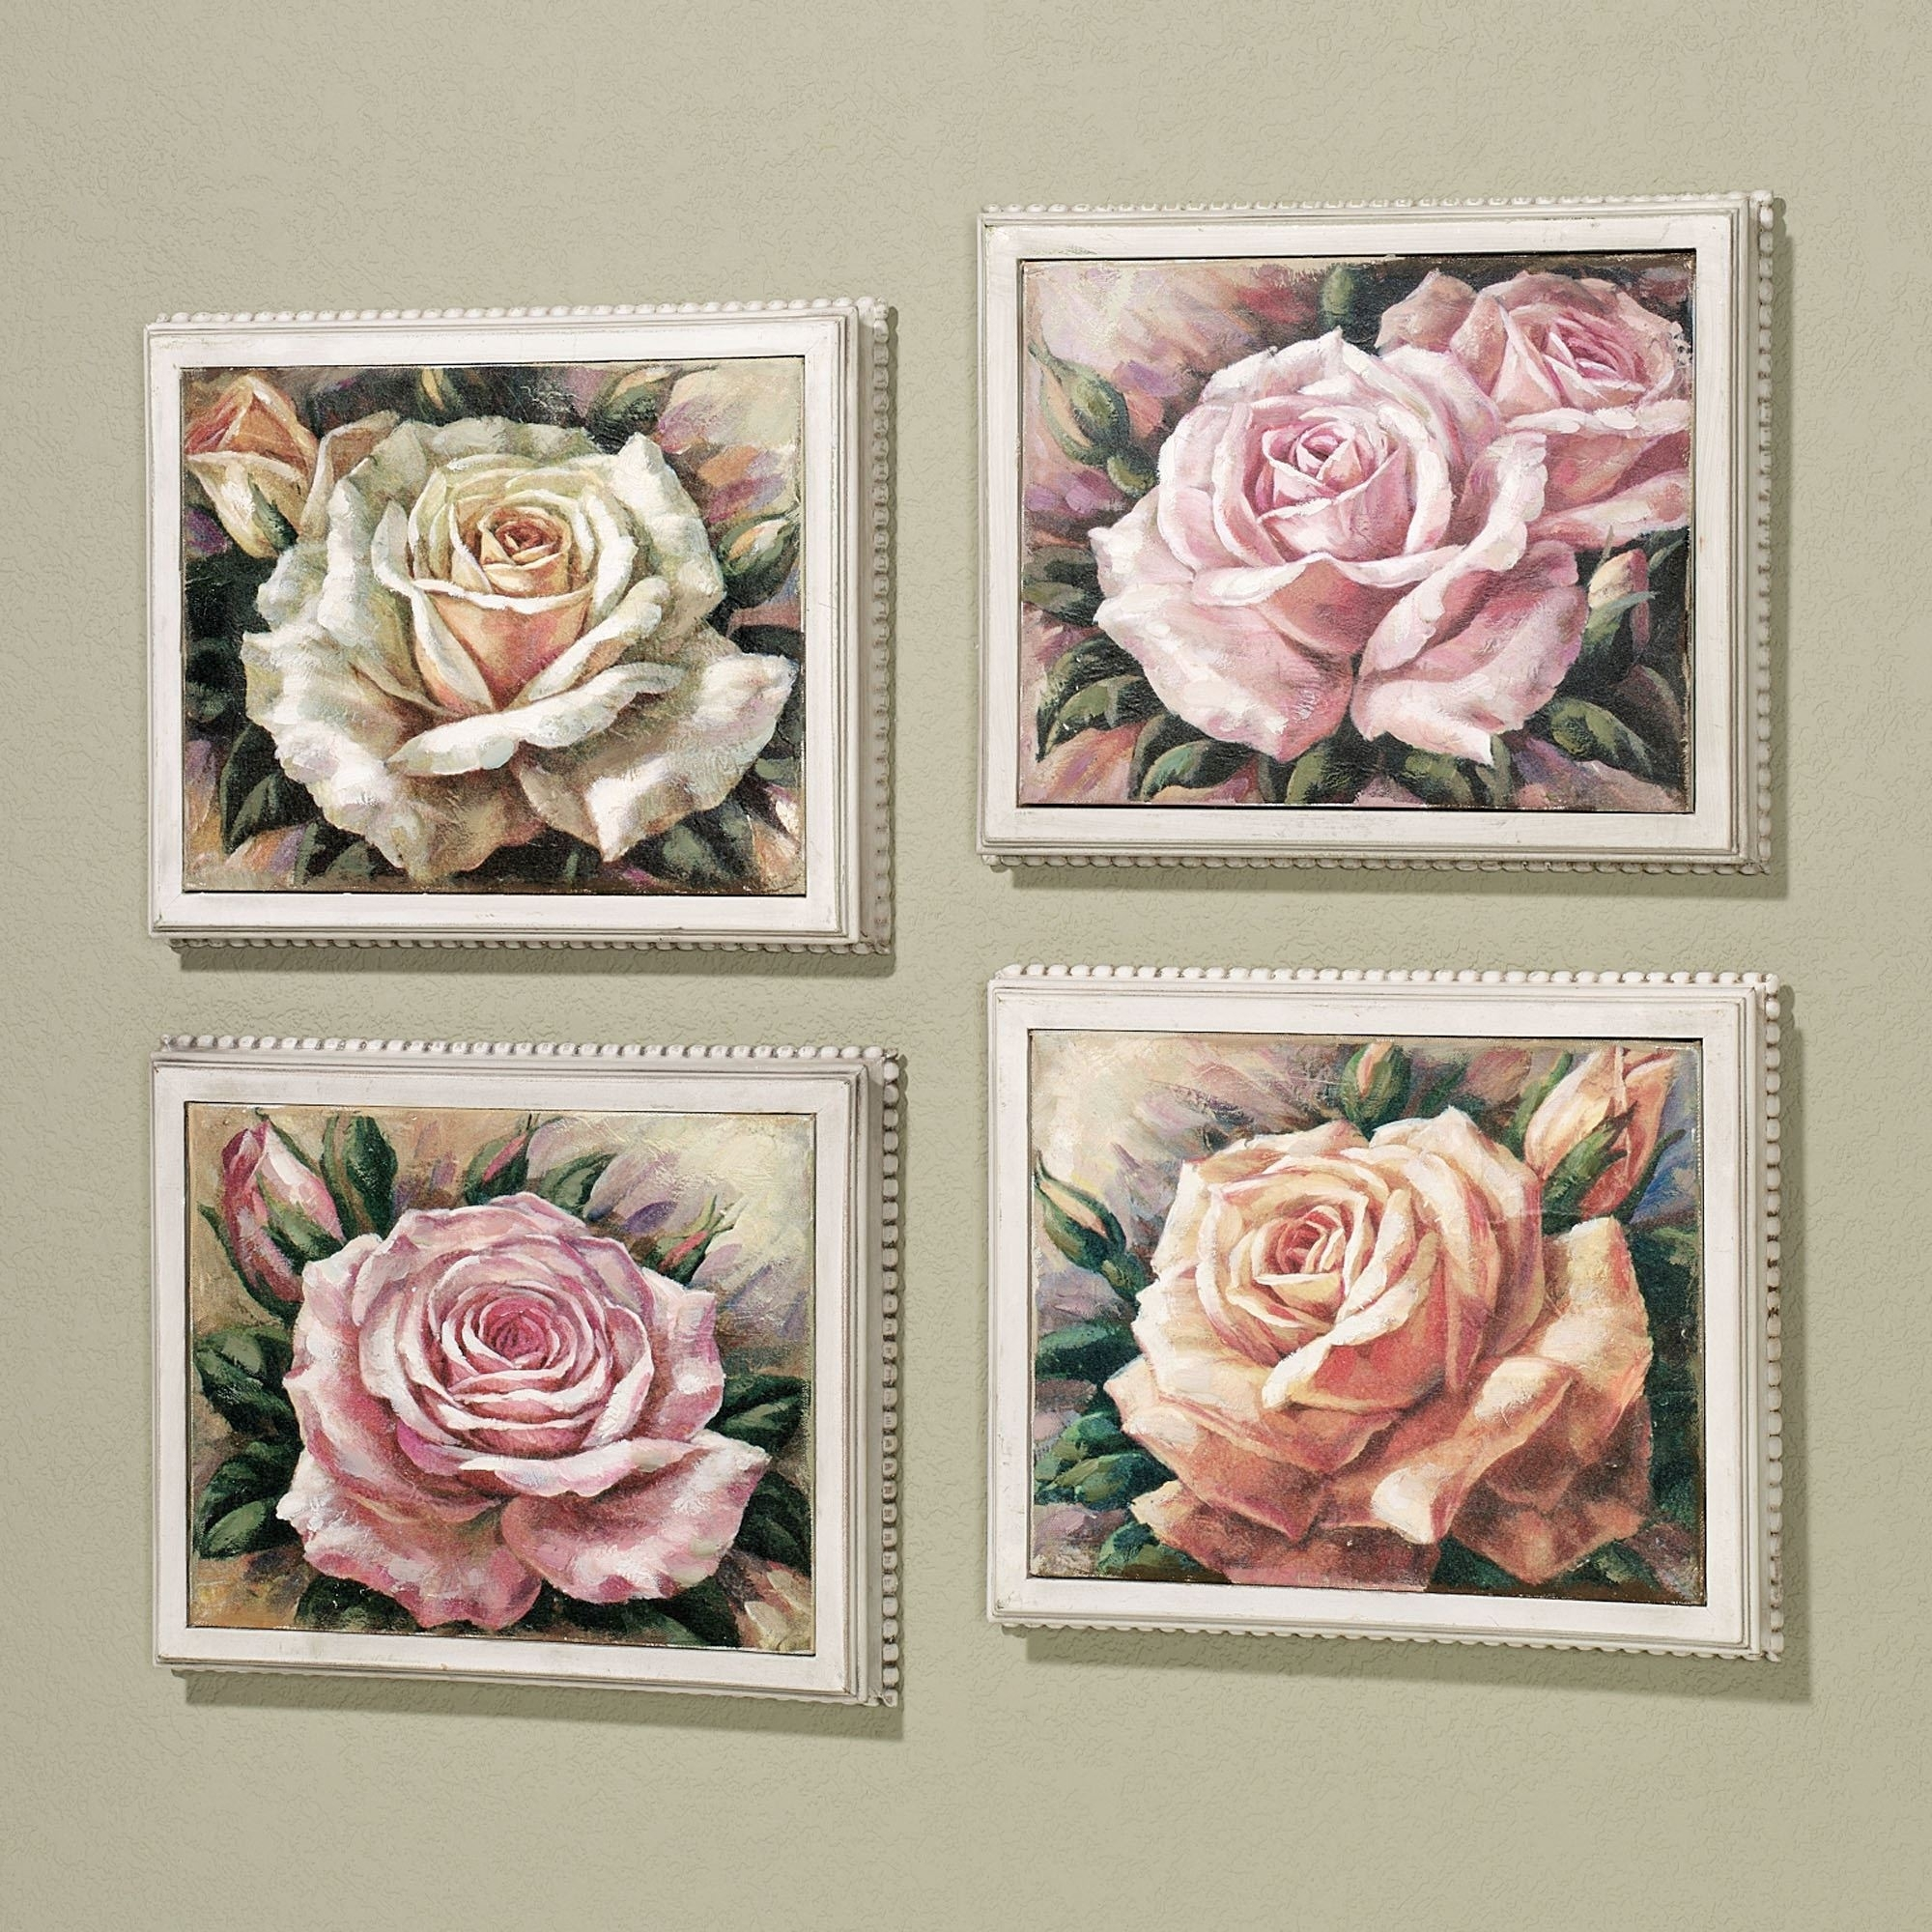 Blooming Roses Framed Canvas Wall Art Set Intended For 2017 Roses Canvas Wall Art (View 4 of 15)